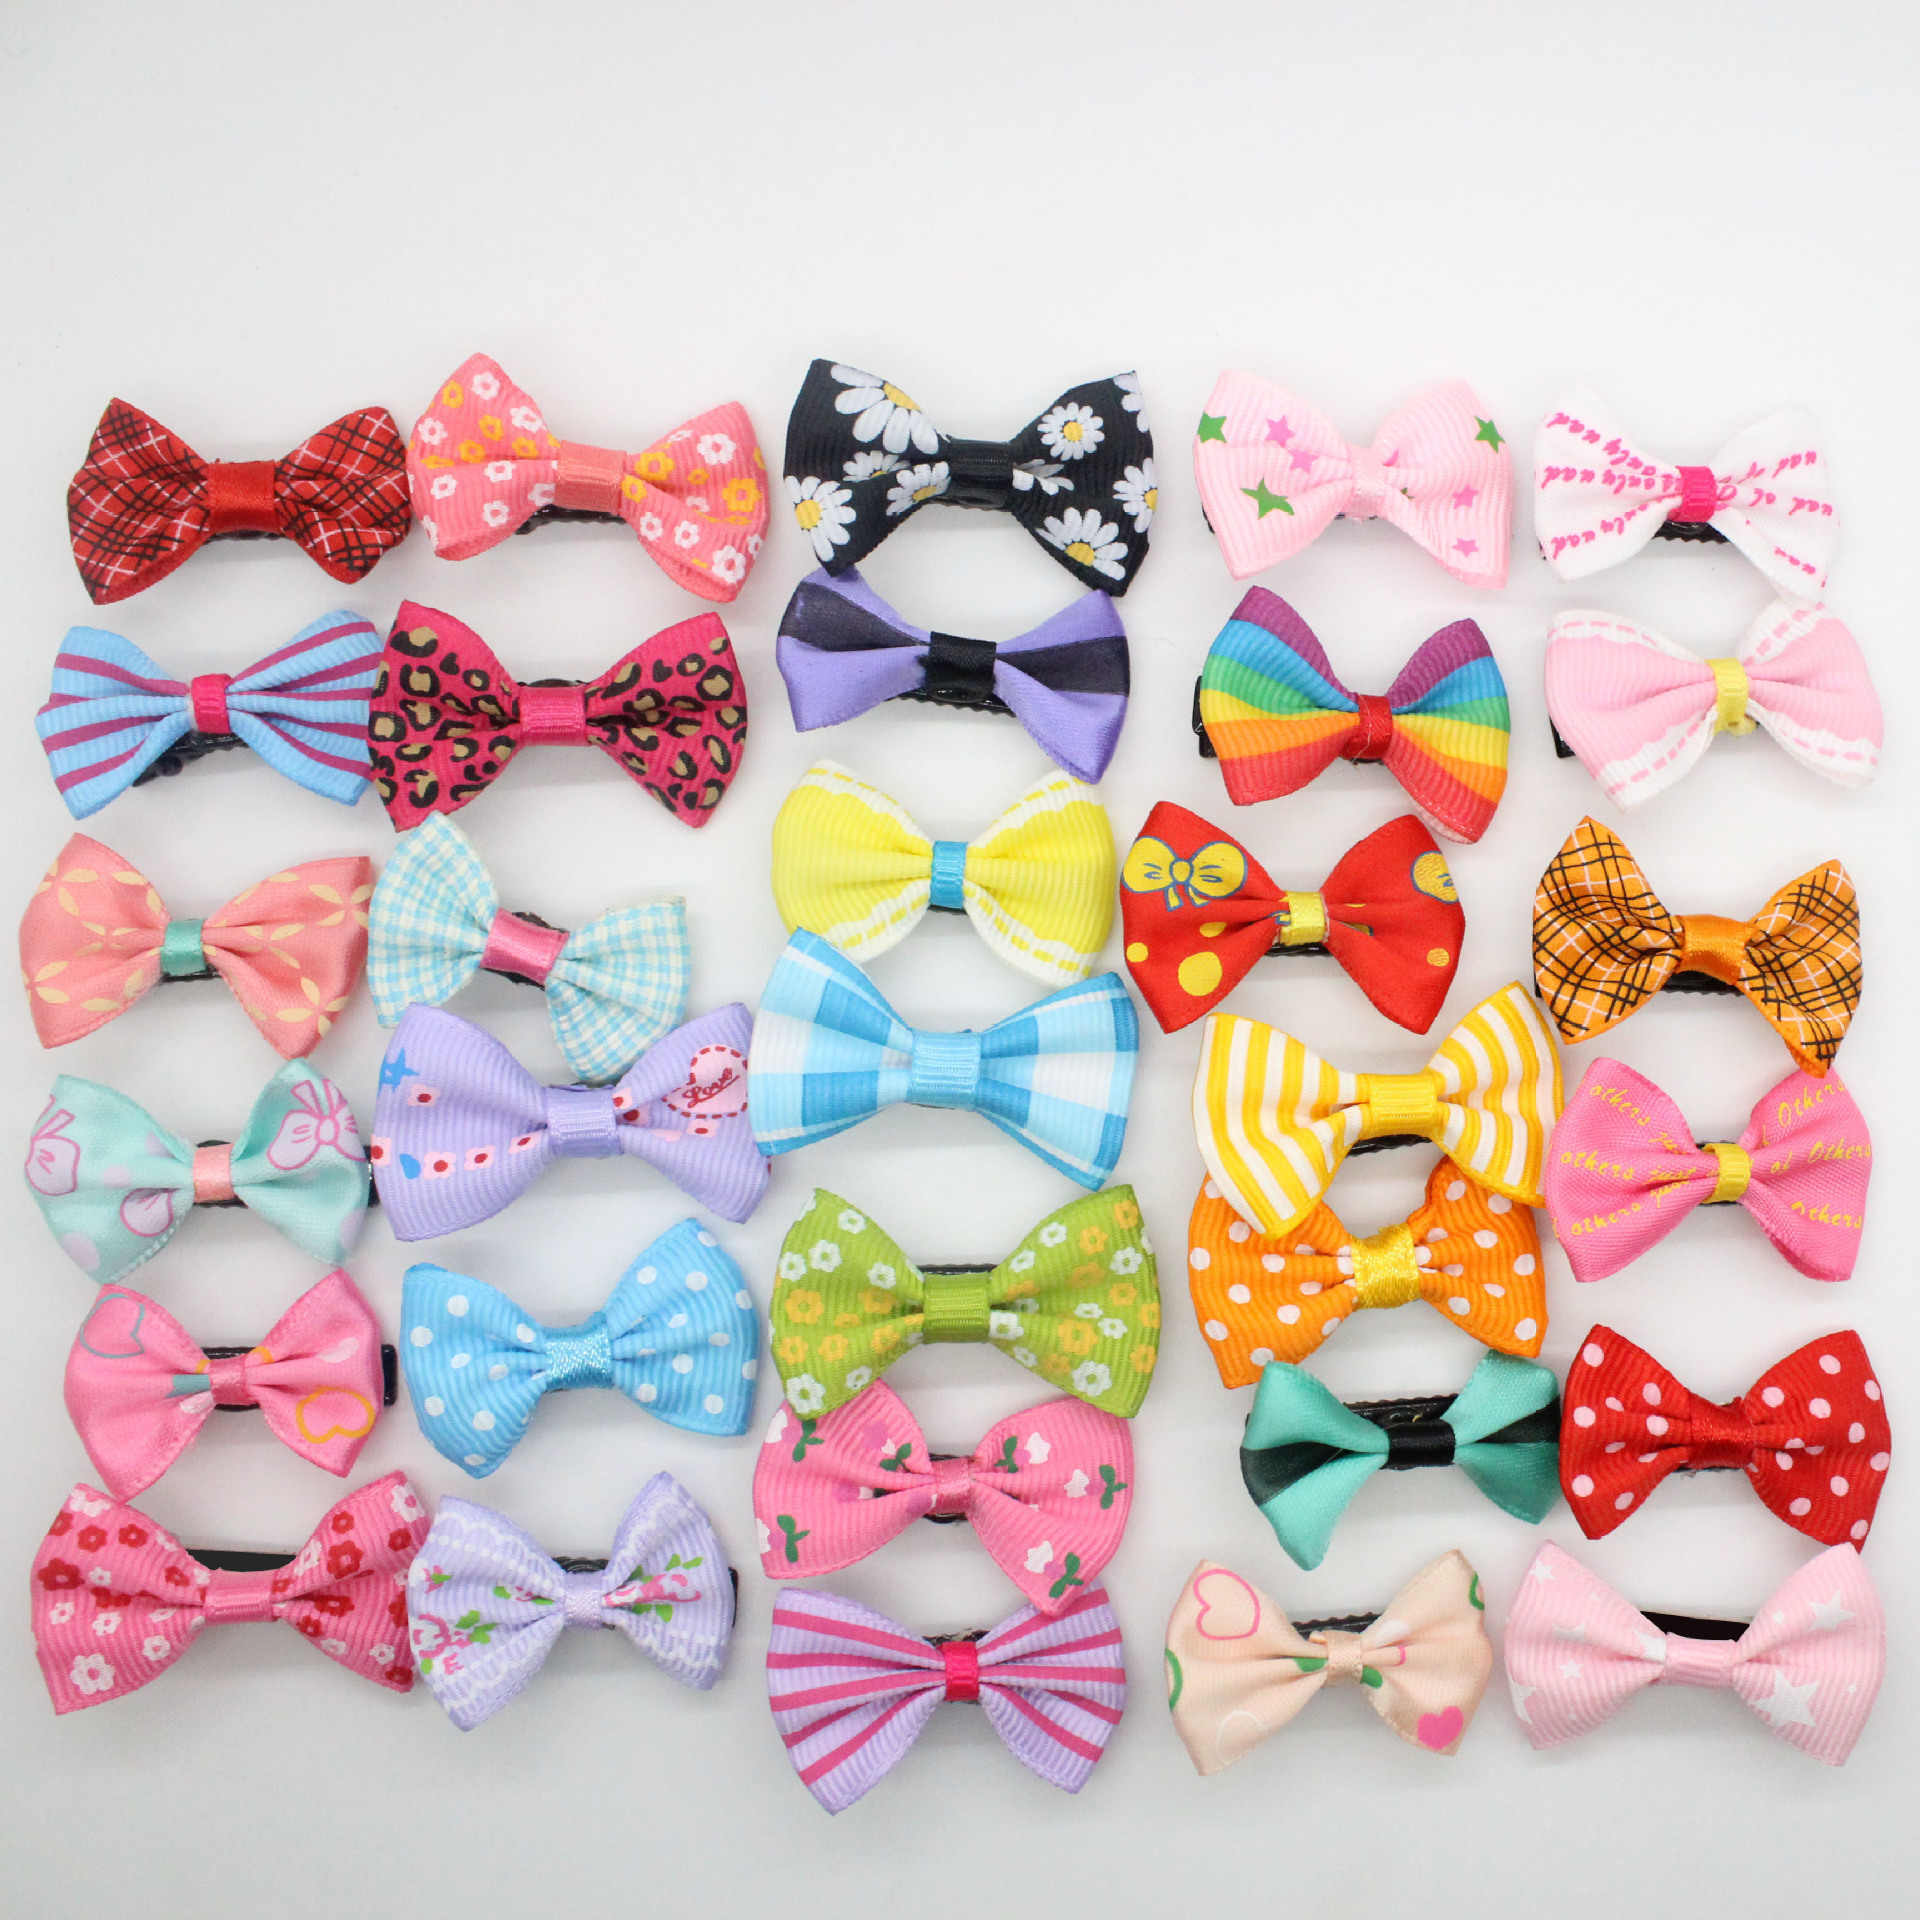 5Pcs Lot Dog Kitten Puppy Cute font b Pet b font Grooming Solid Cotton Bow Flower